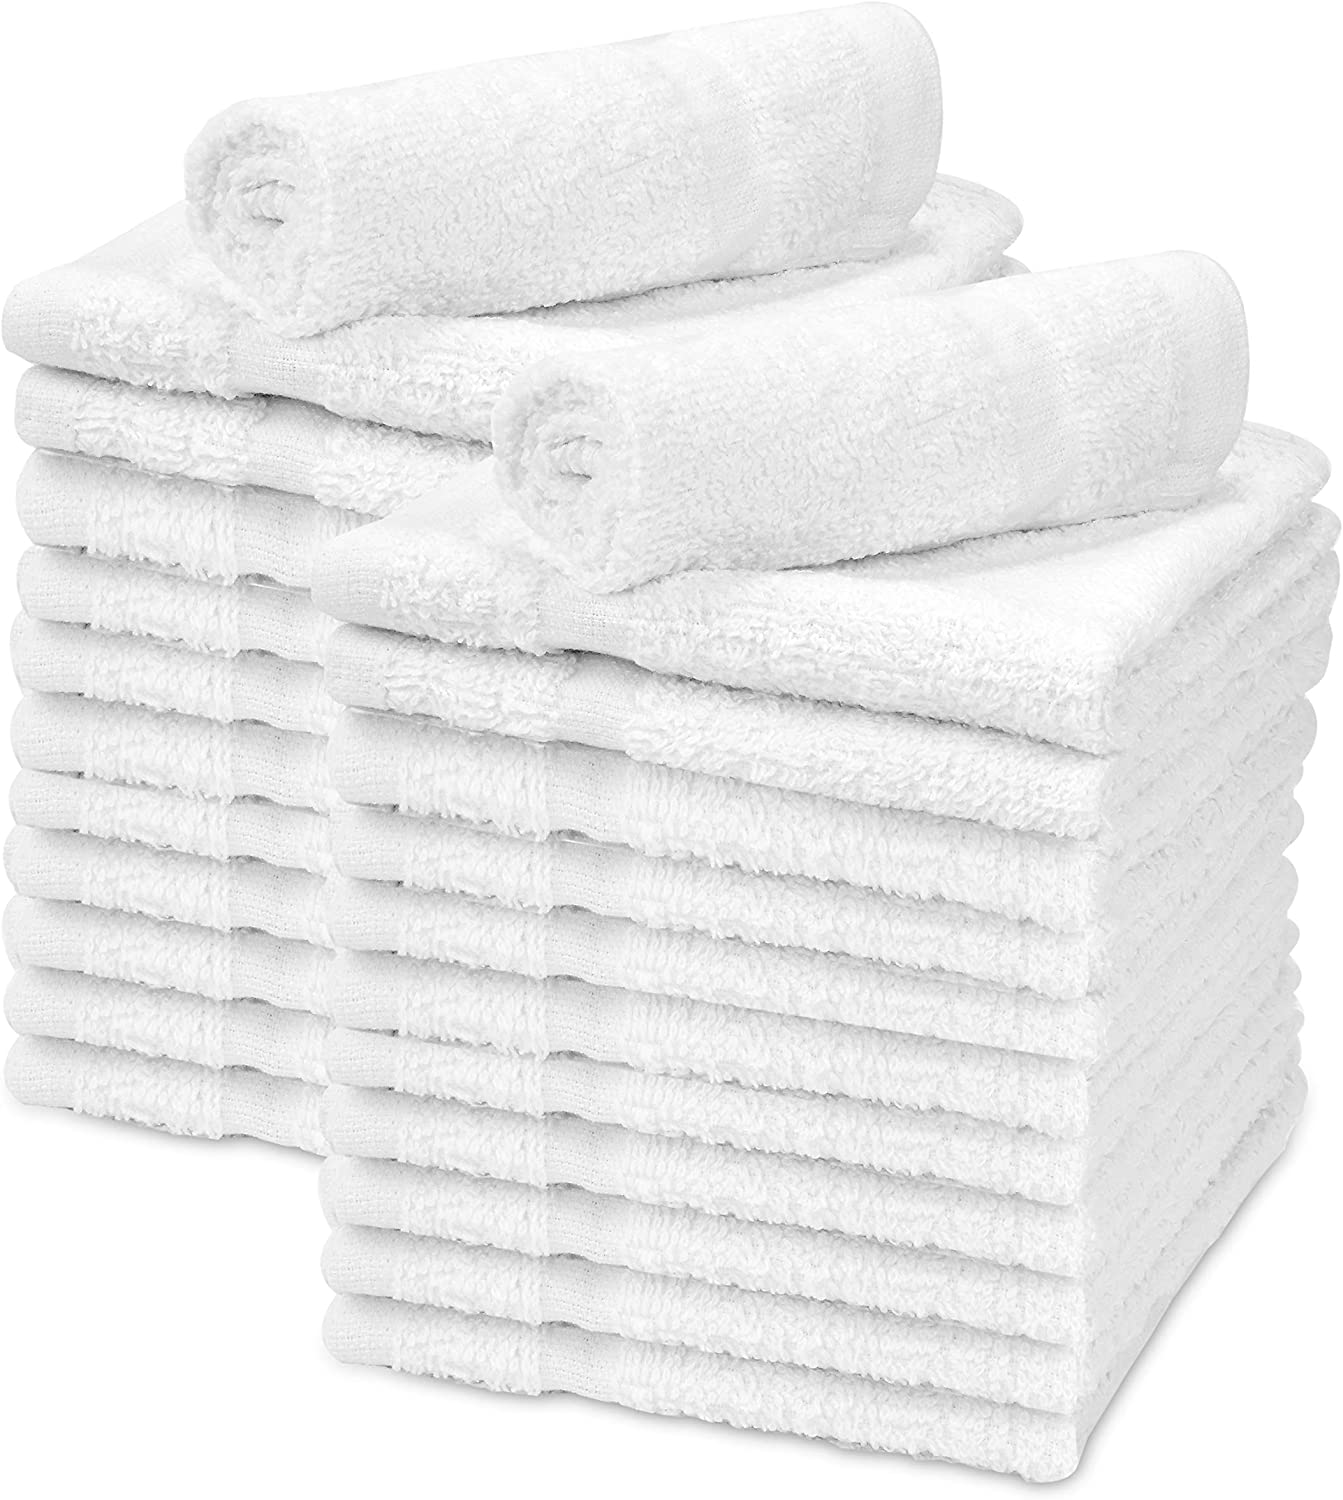 """Talvania Washcloths Towels 24 Pack Super Absorbent Terry Towel 100% Ring Spun Cotton White Wash Cloth with Border Design Ideal for Face Wash Long Lasting Multi-Purpose Gym Spa Home Bath Towel 12""""X12"""": Home & Kitchen"""